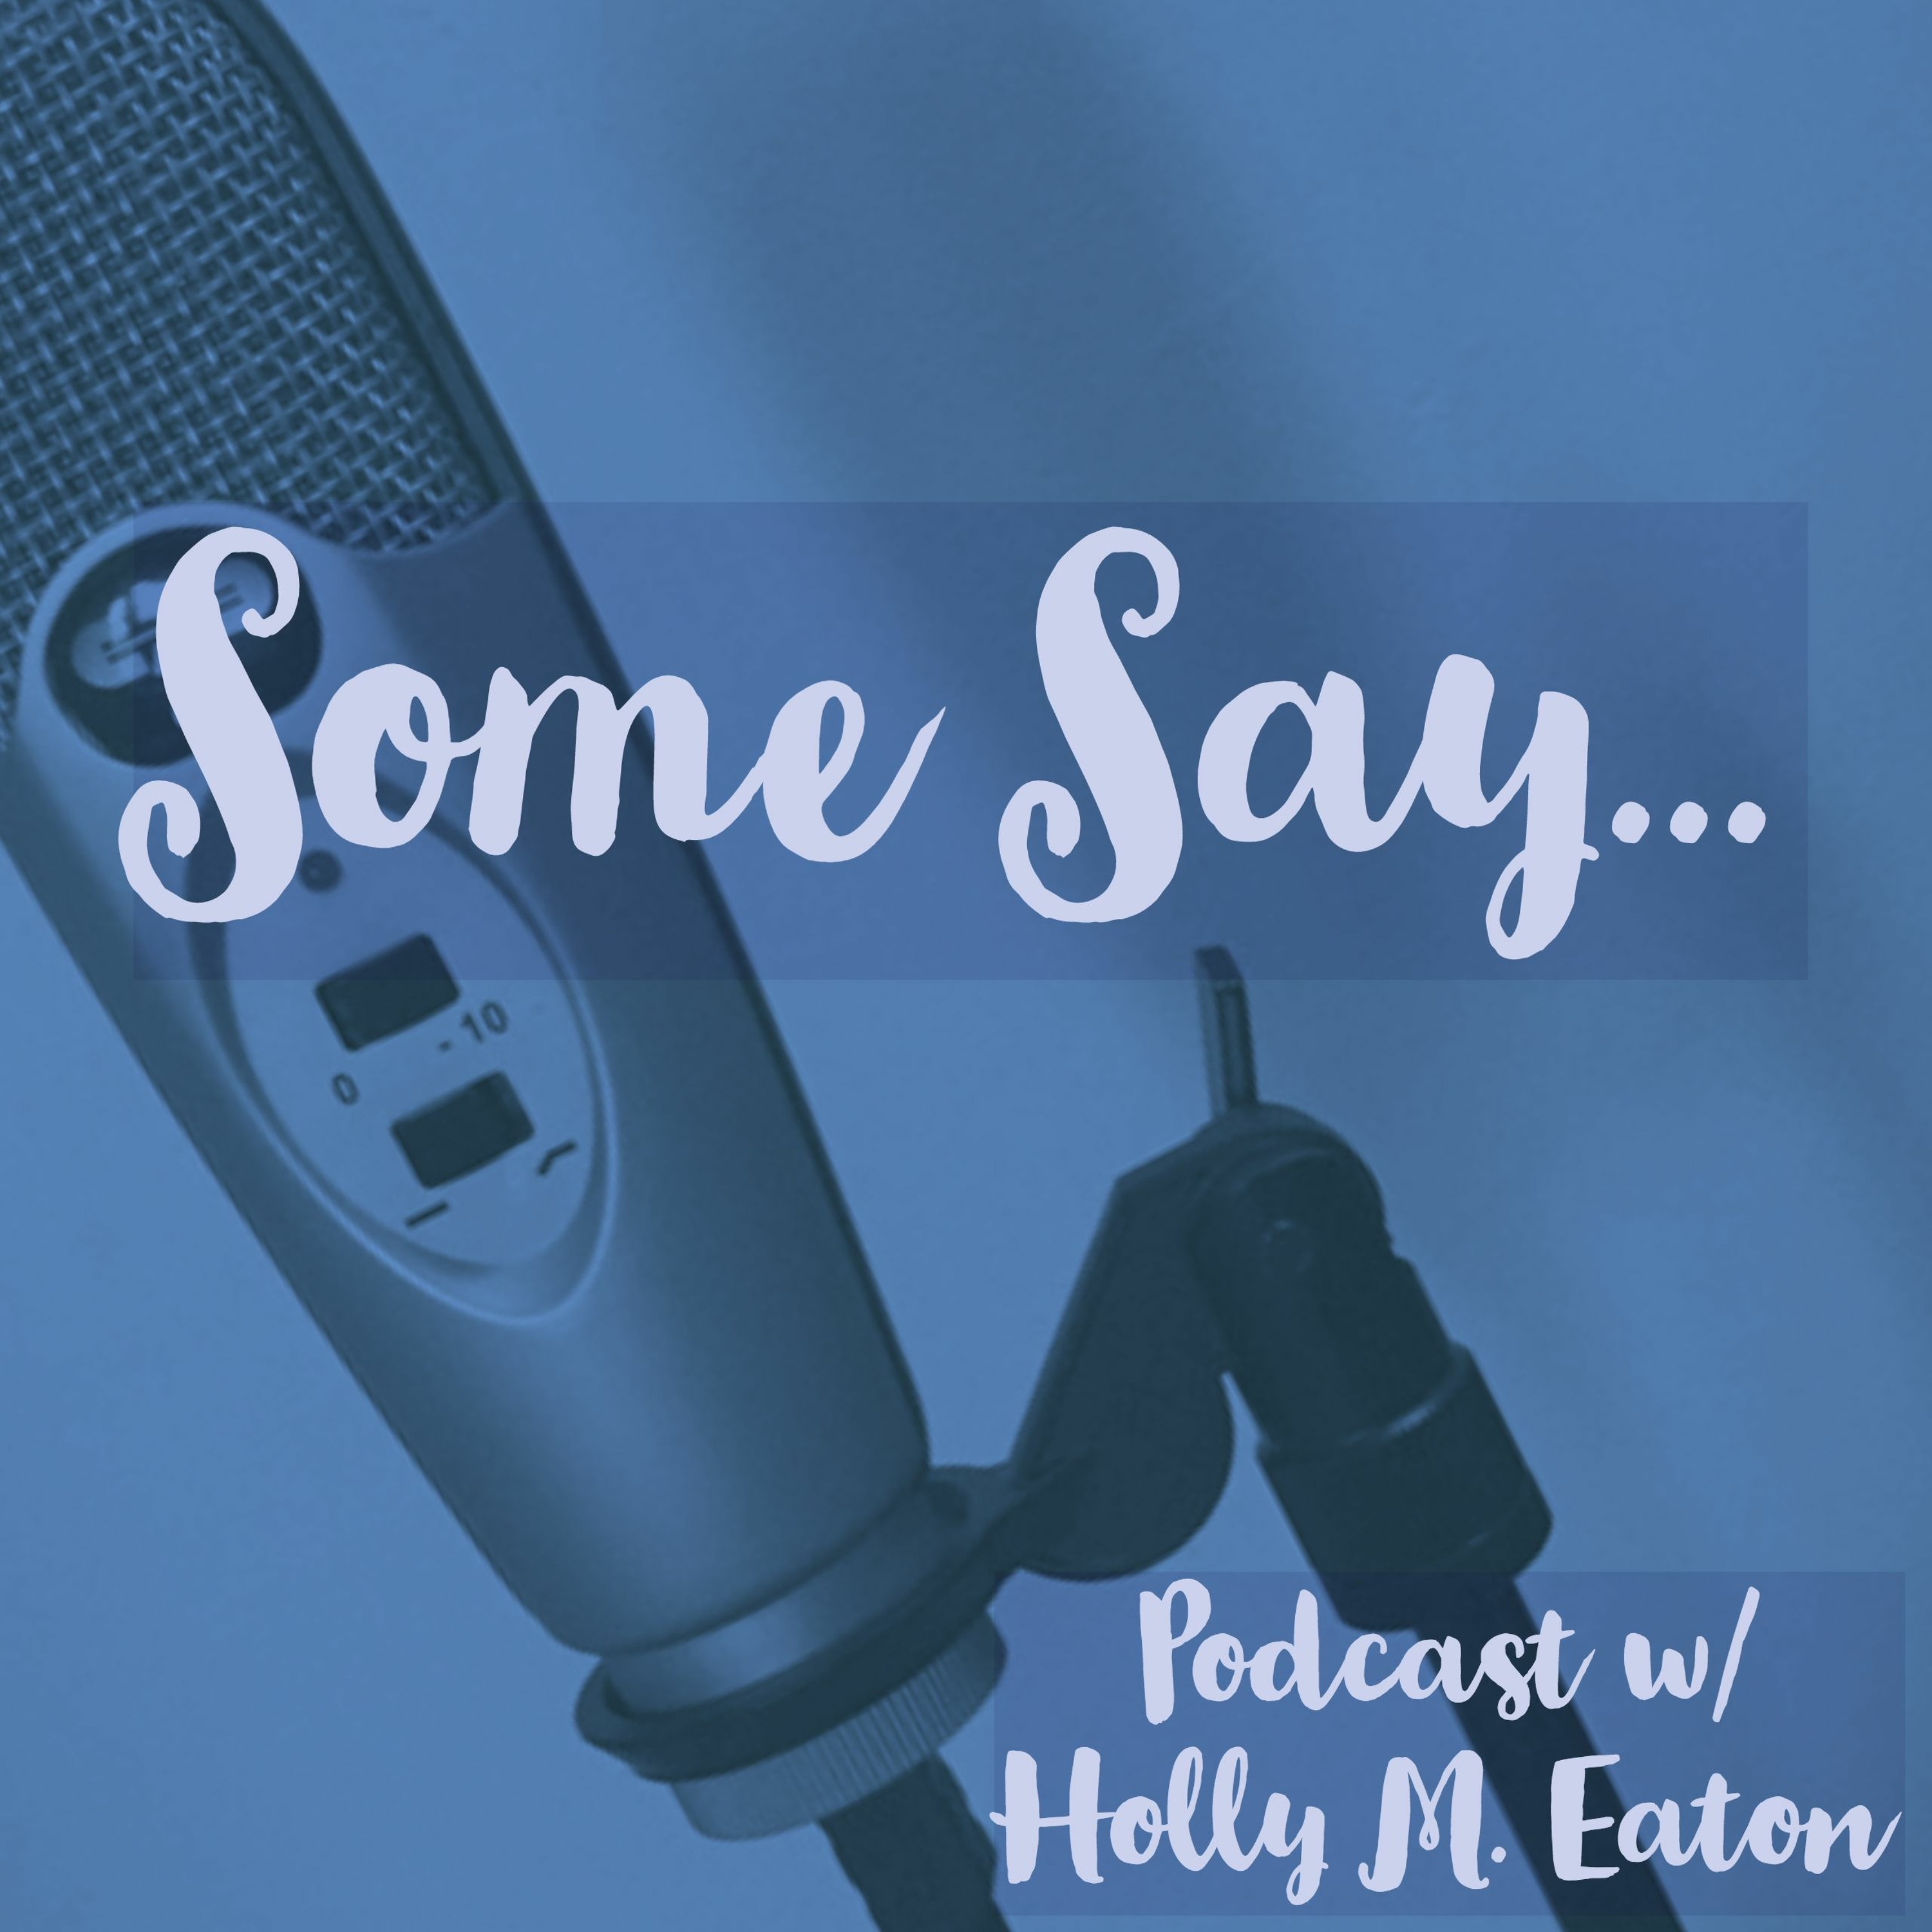 Some Say... Podcast! w/Holly, Guest: Karimah